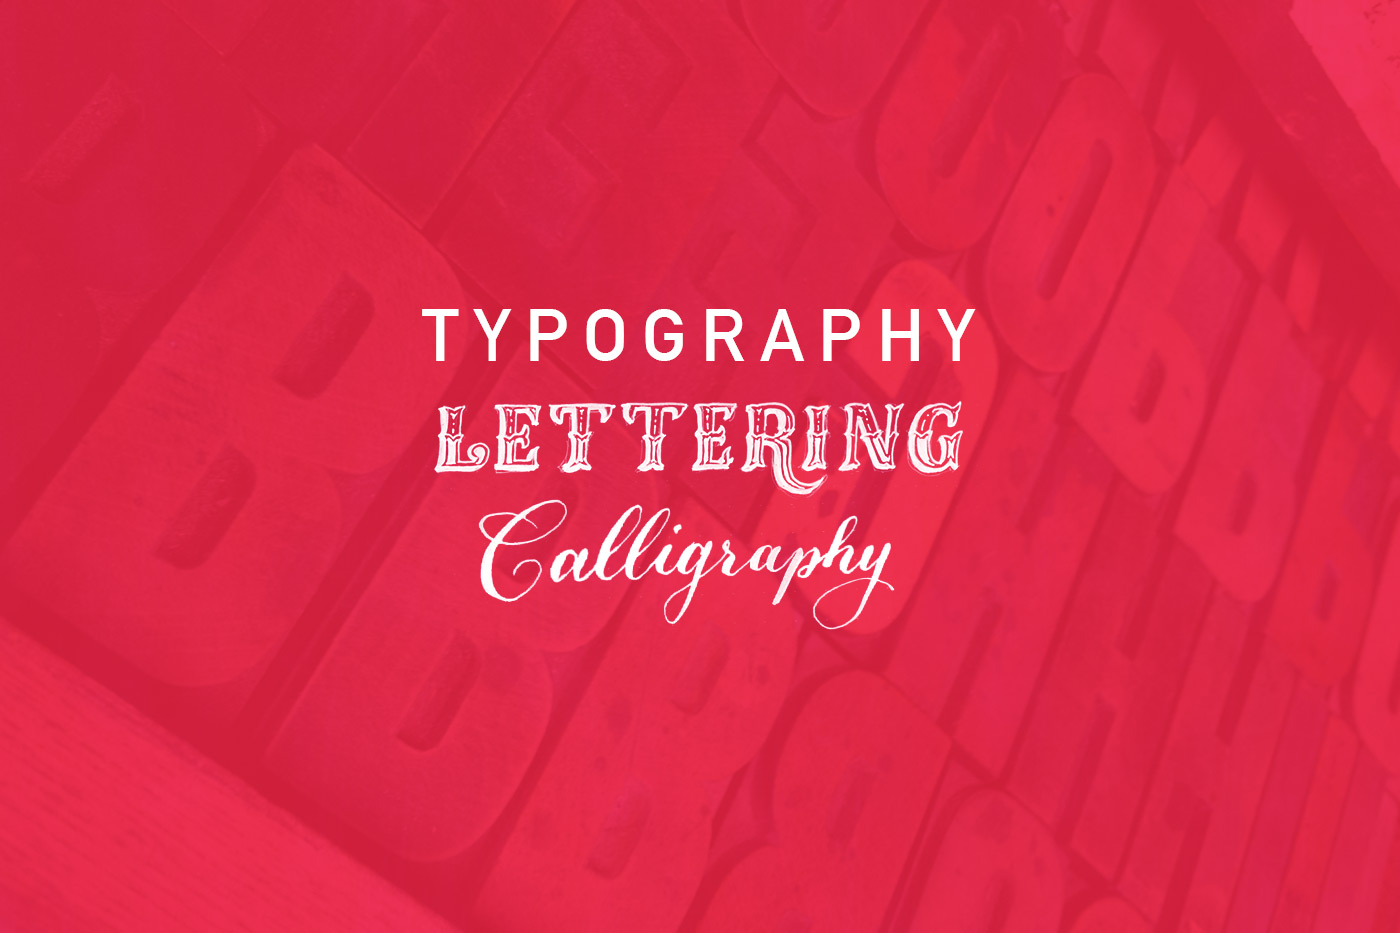 Typography lettering calligraphy what 39 s the Difference between calligraphy and typography